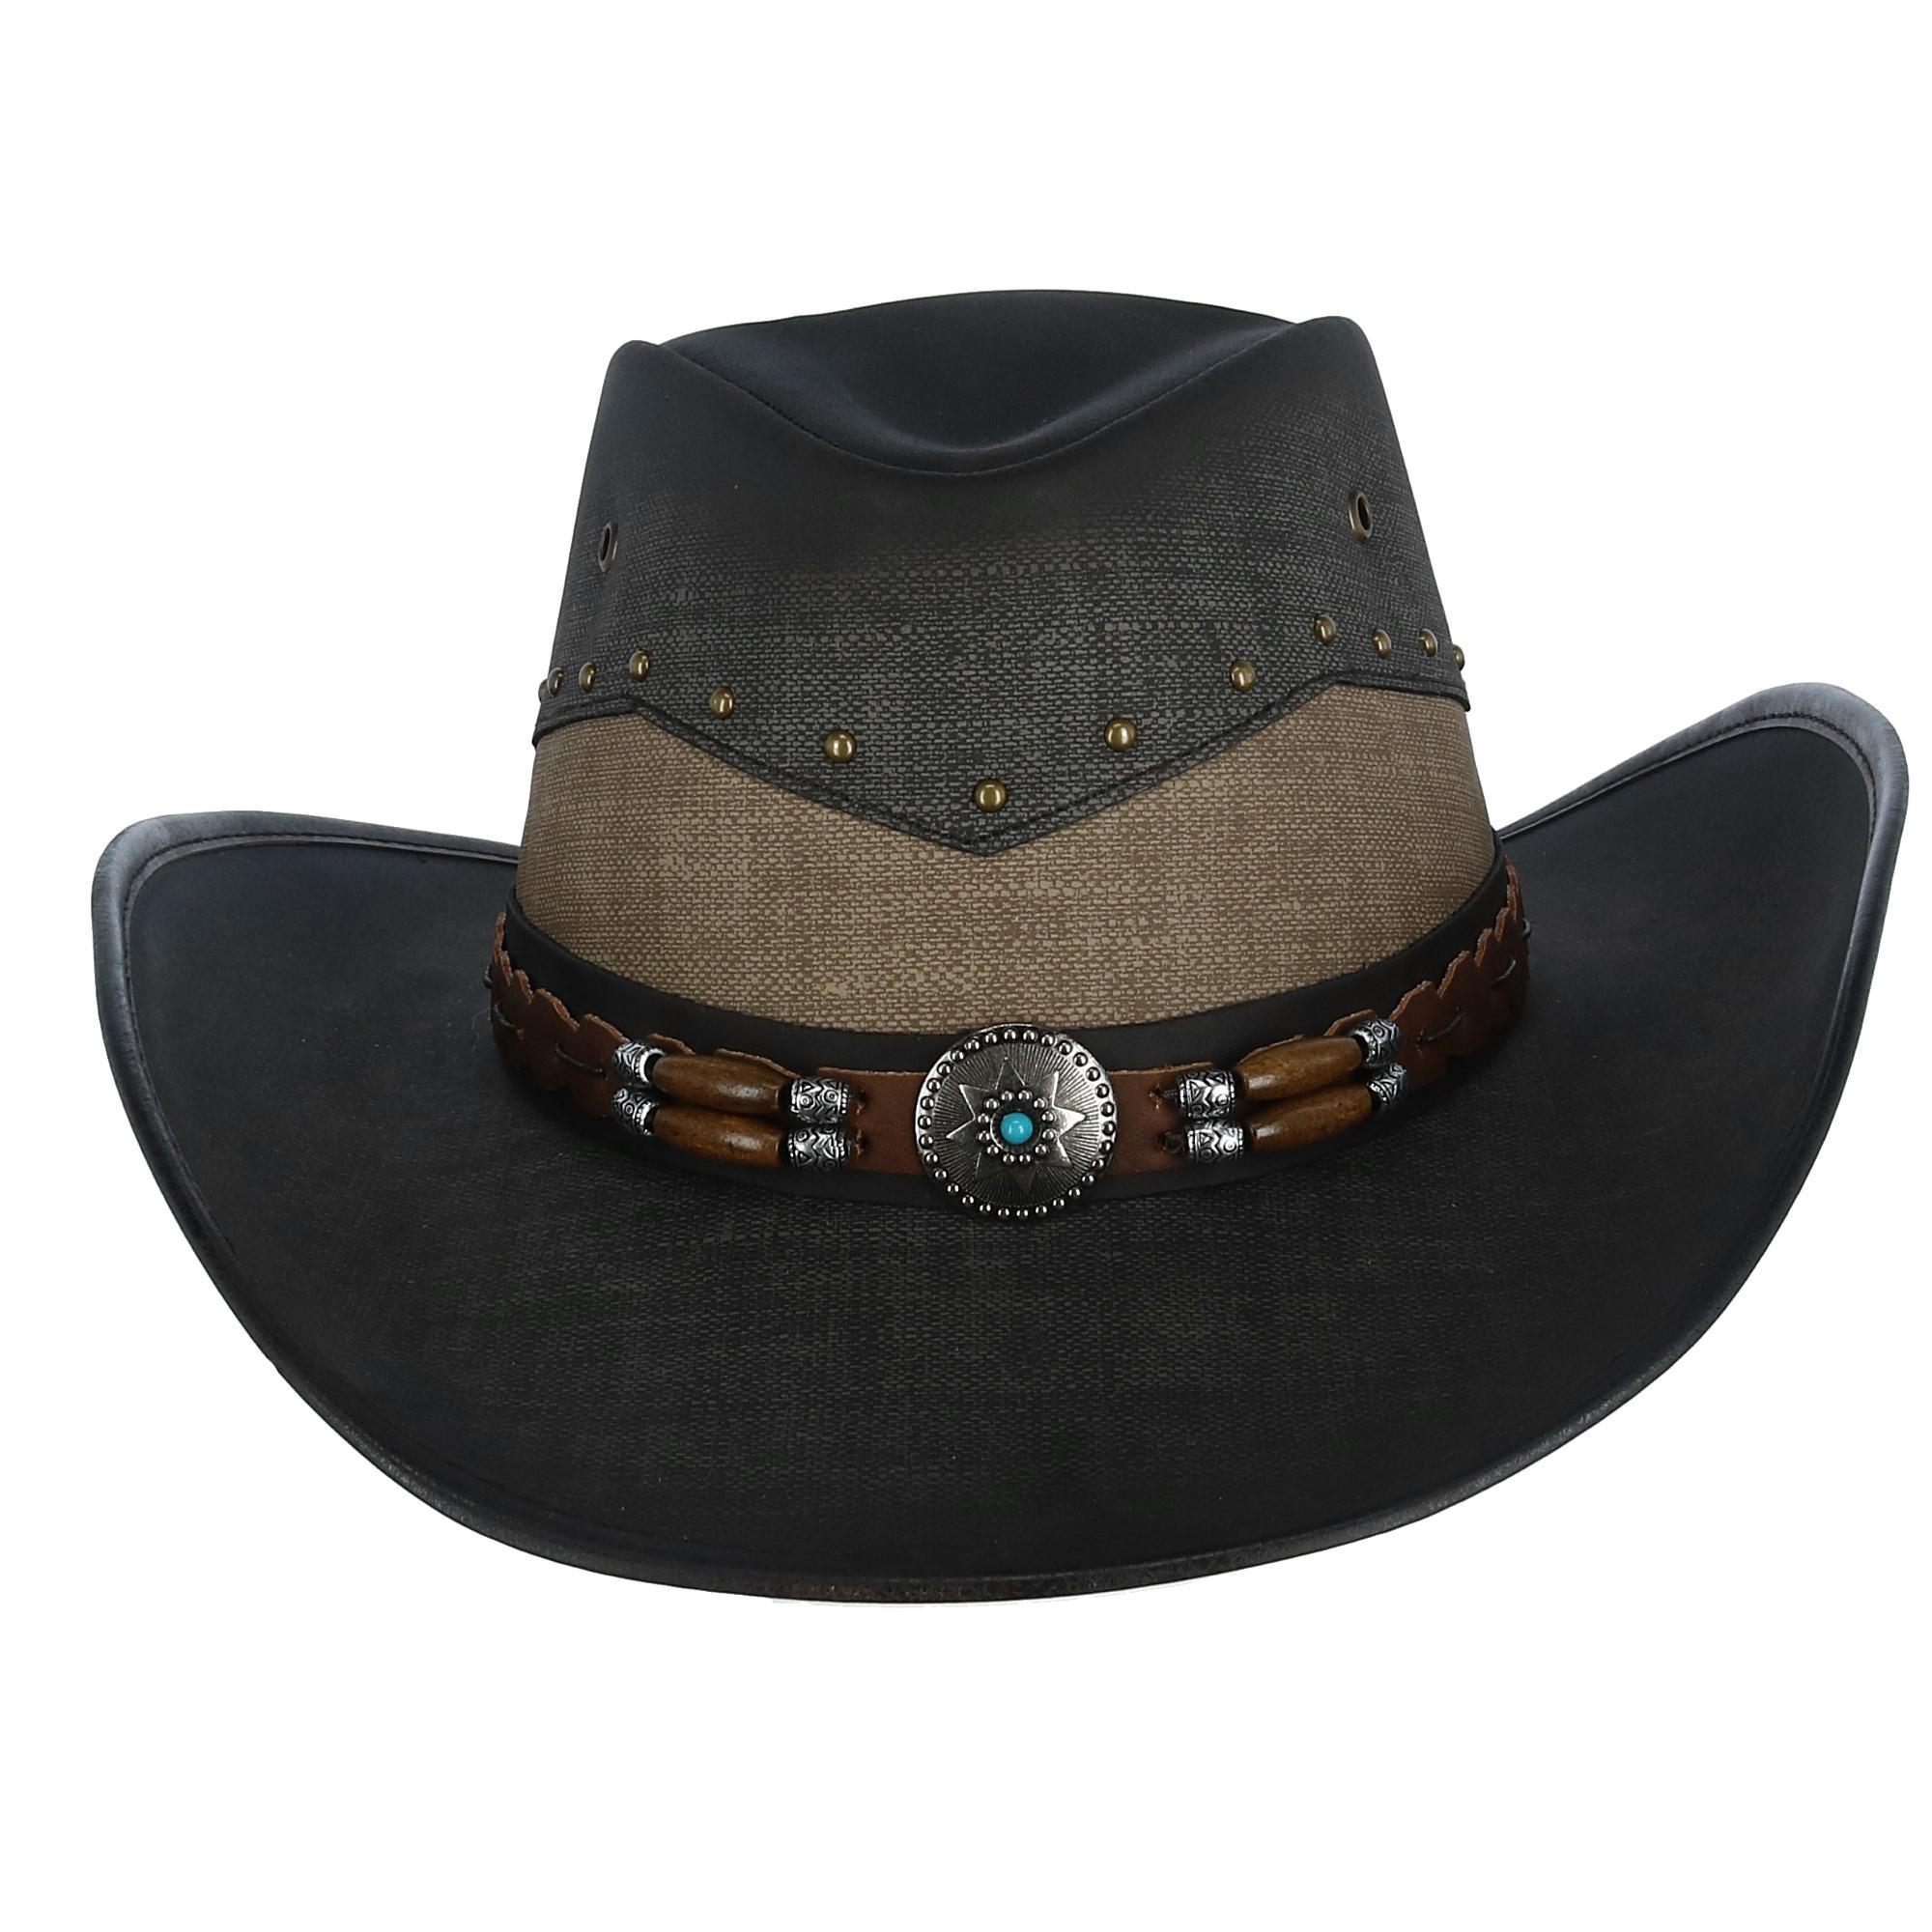 Details about New Kenny K Men's Vegan Leather Western Hat with Beaded  Hatband